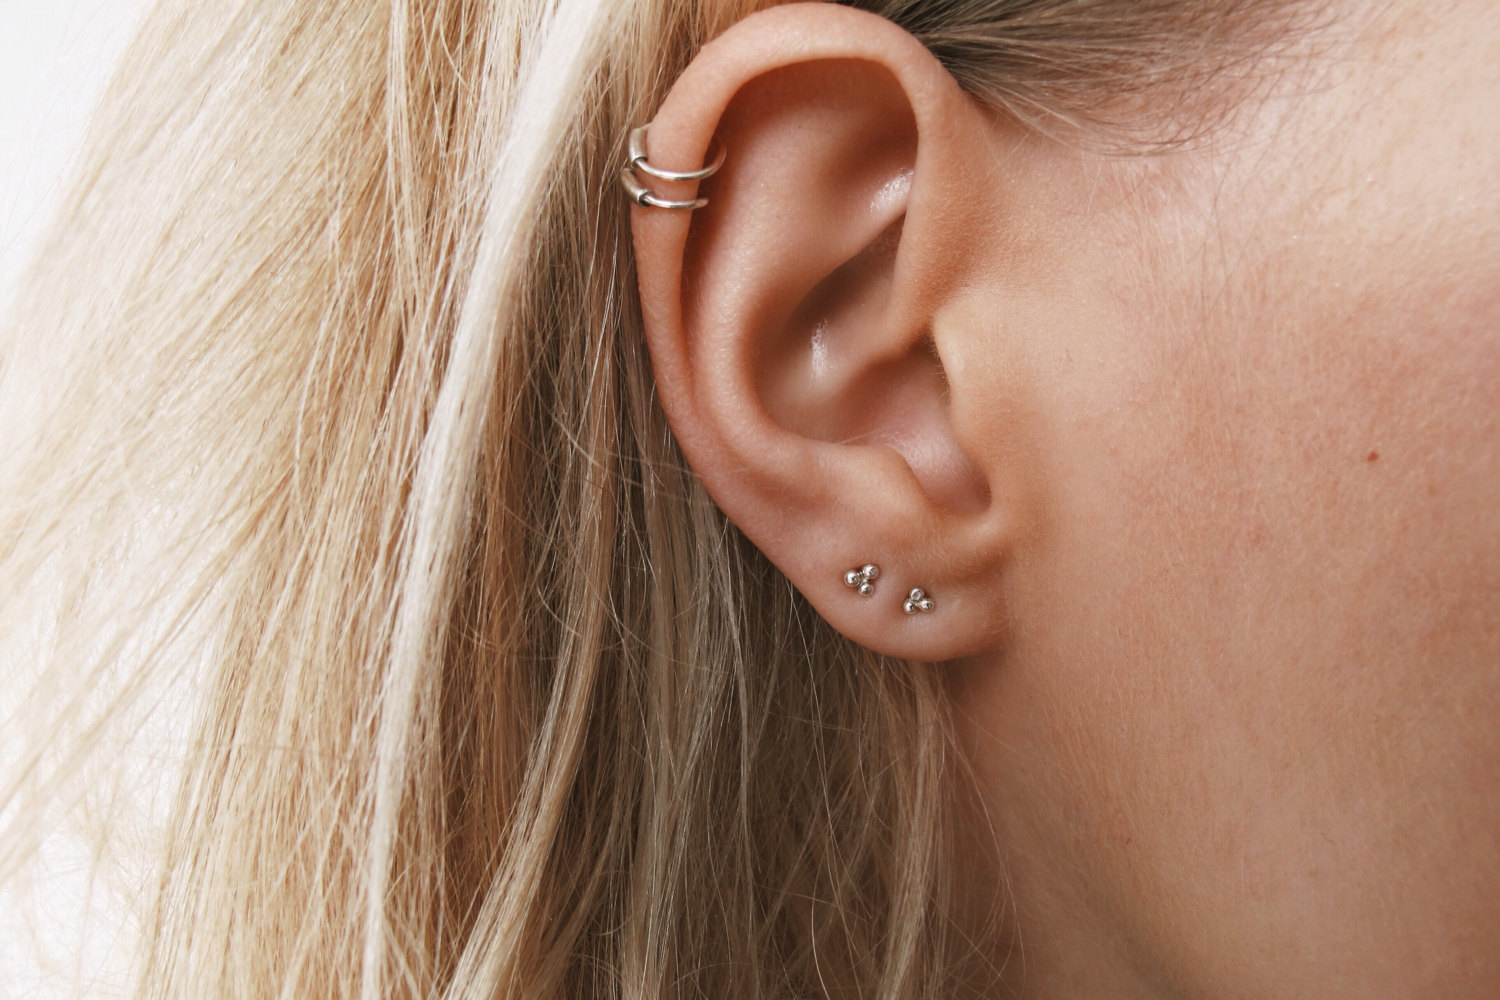 Don T Jump The Gun When It Comes To Getting A Cartilage Piercings